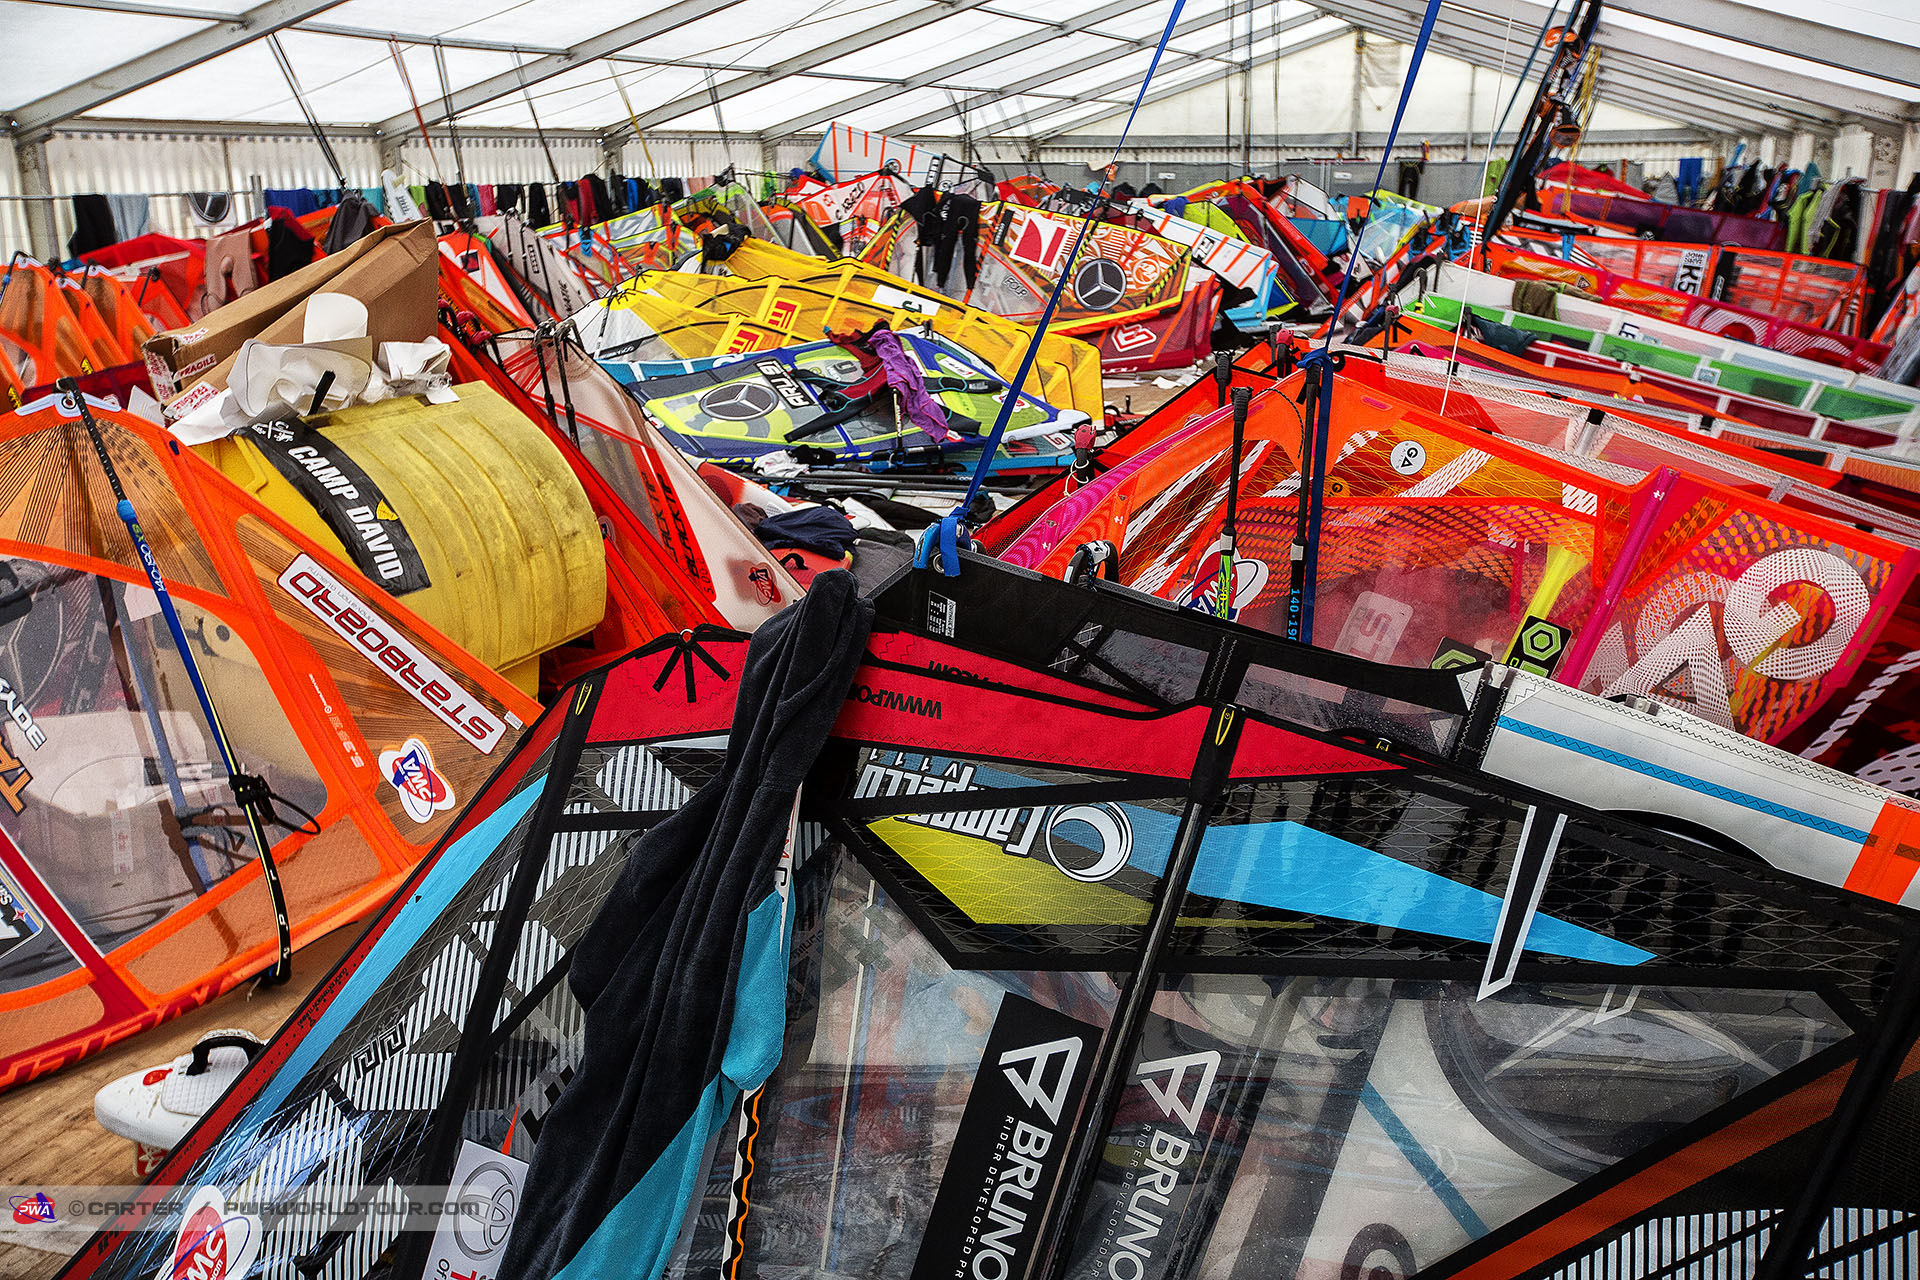 The windsurf equipment storage tent